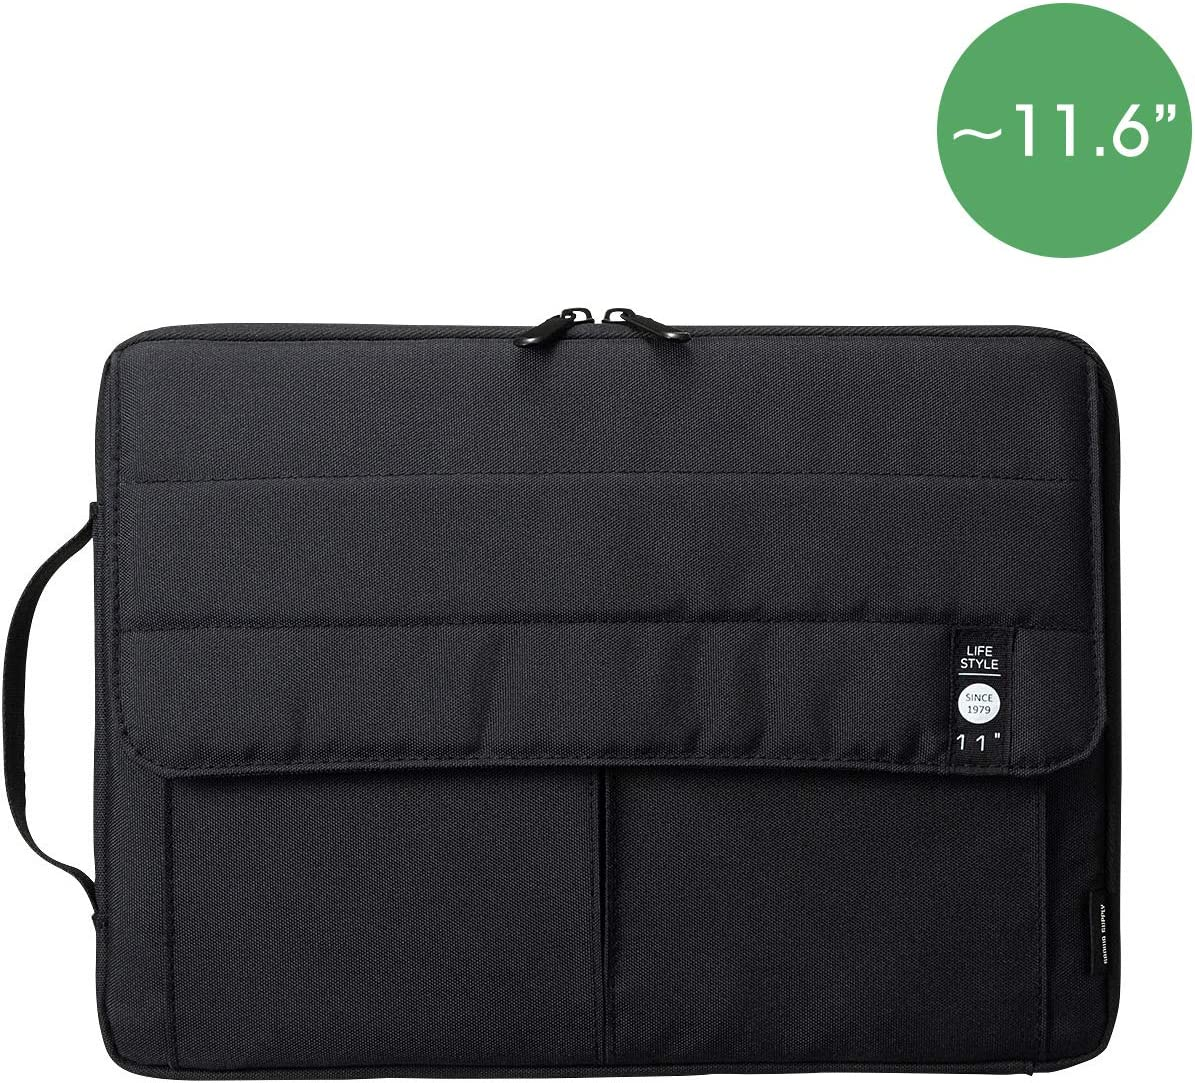 SANWA (Japan Brand) Laptop Computer Sleeve Case, Sleeve Bag Compatible with 13 inch MacBook Pro, MacBook Air, Pad,HP, Dell, Notebook Computer, Water Resistance Case Cover with Pocket, Black